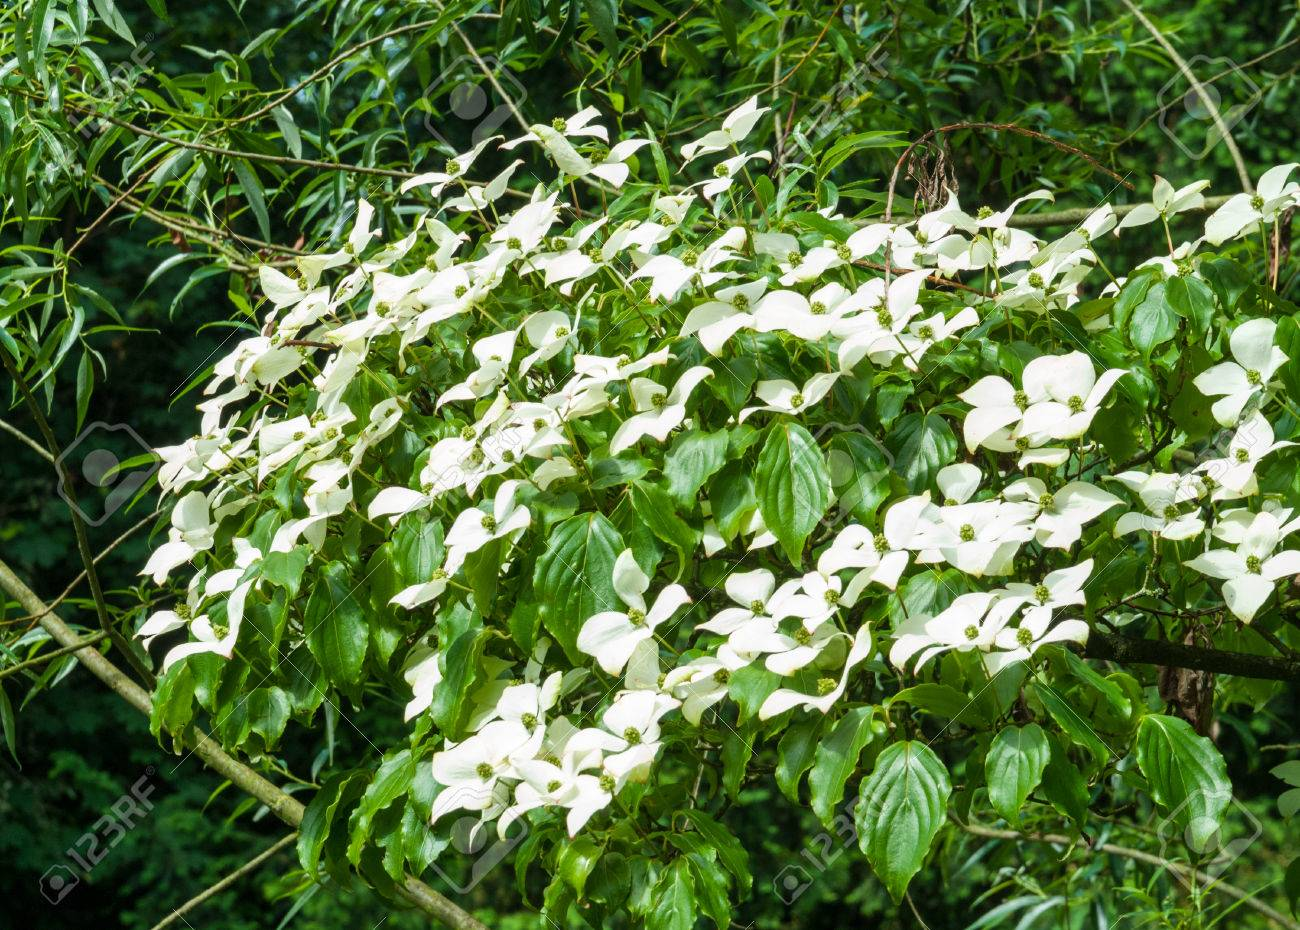 Chinese Dogwood, Cornus kousa, with inflorescences Standard-Bild - 29296251